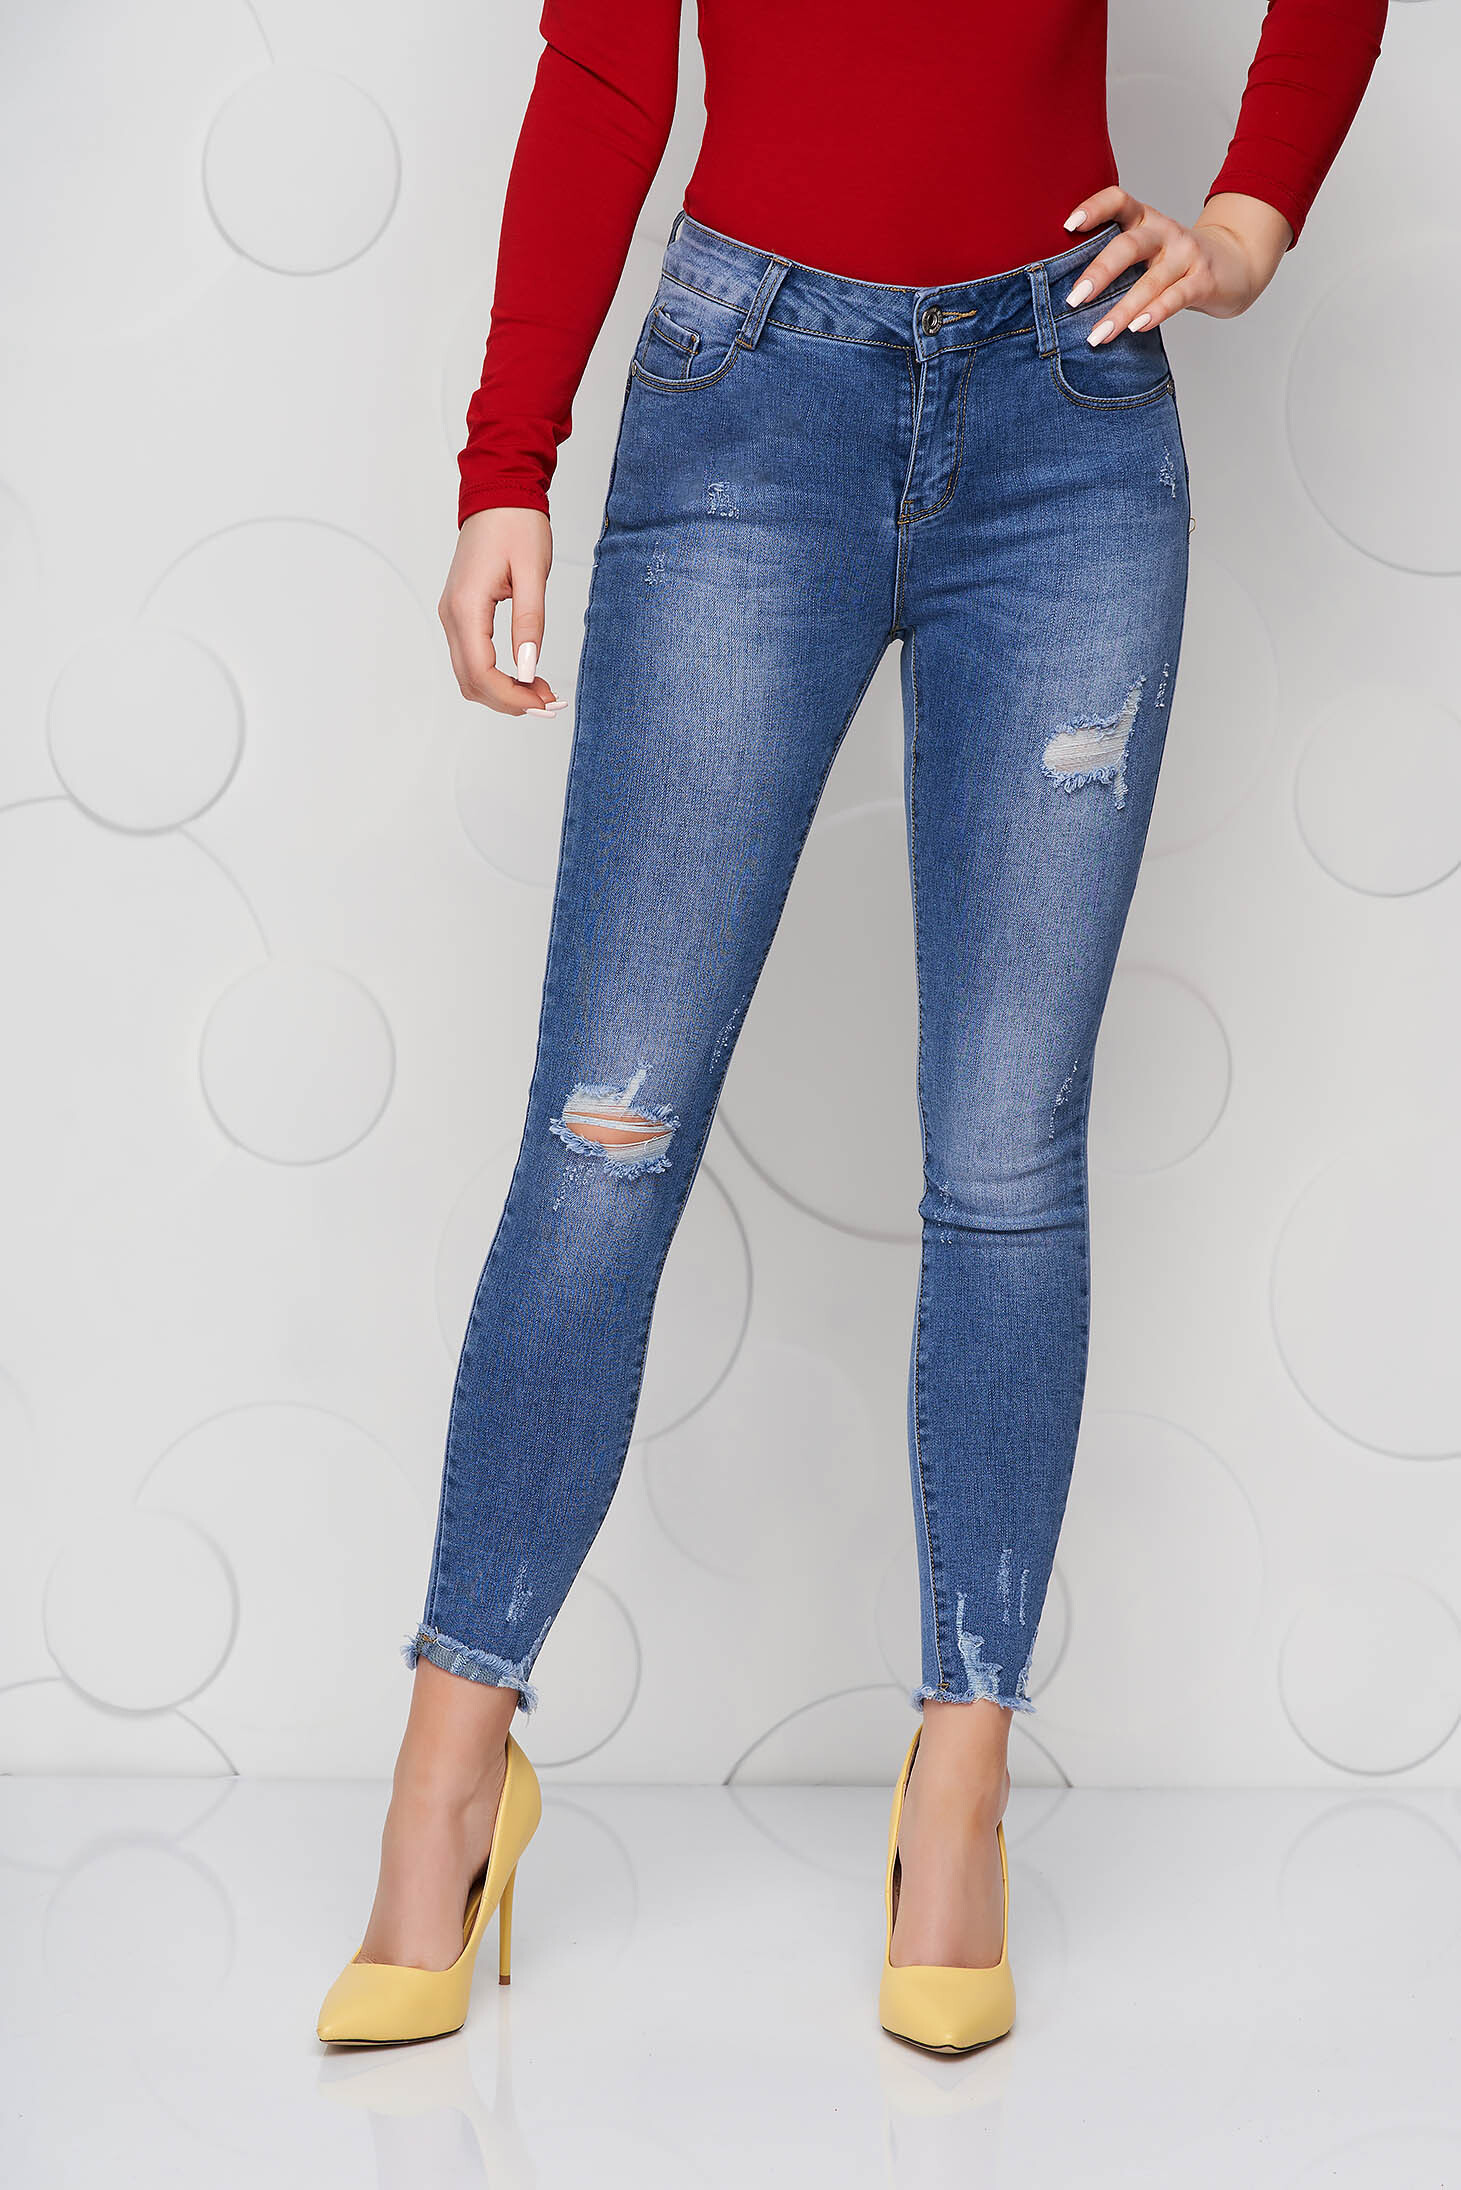 Blue jeans skinny jeans small rupture of material high waisted